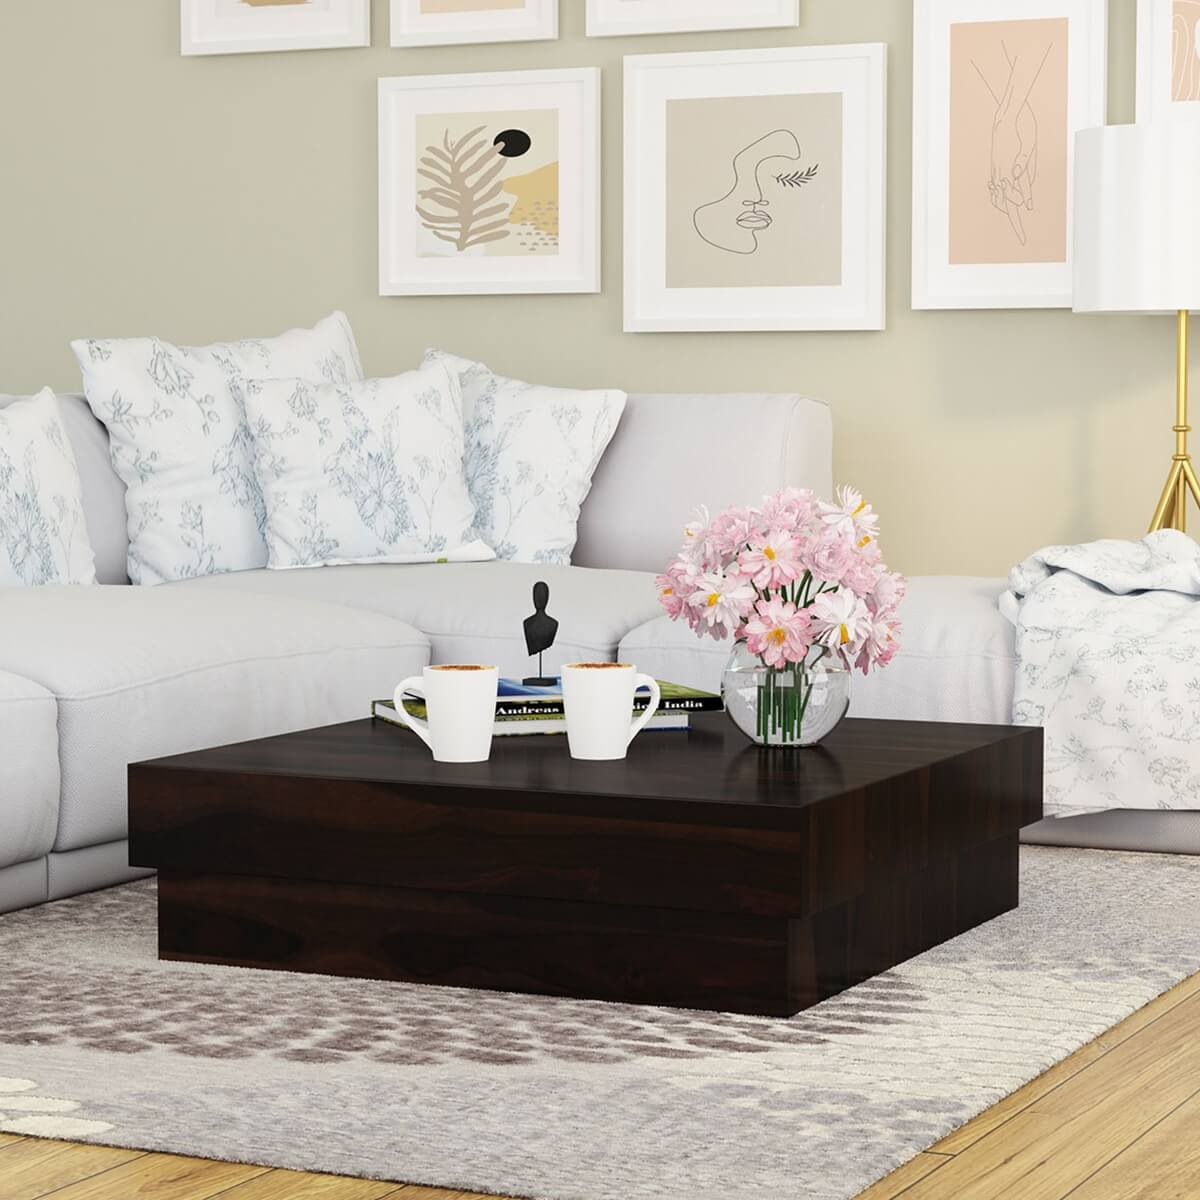 Colorful Modern Coffee Table: Solid Wood Square Contemporary Platform Unique Coffee Table